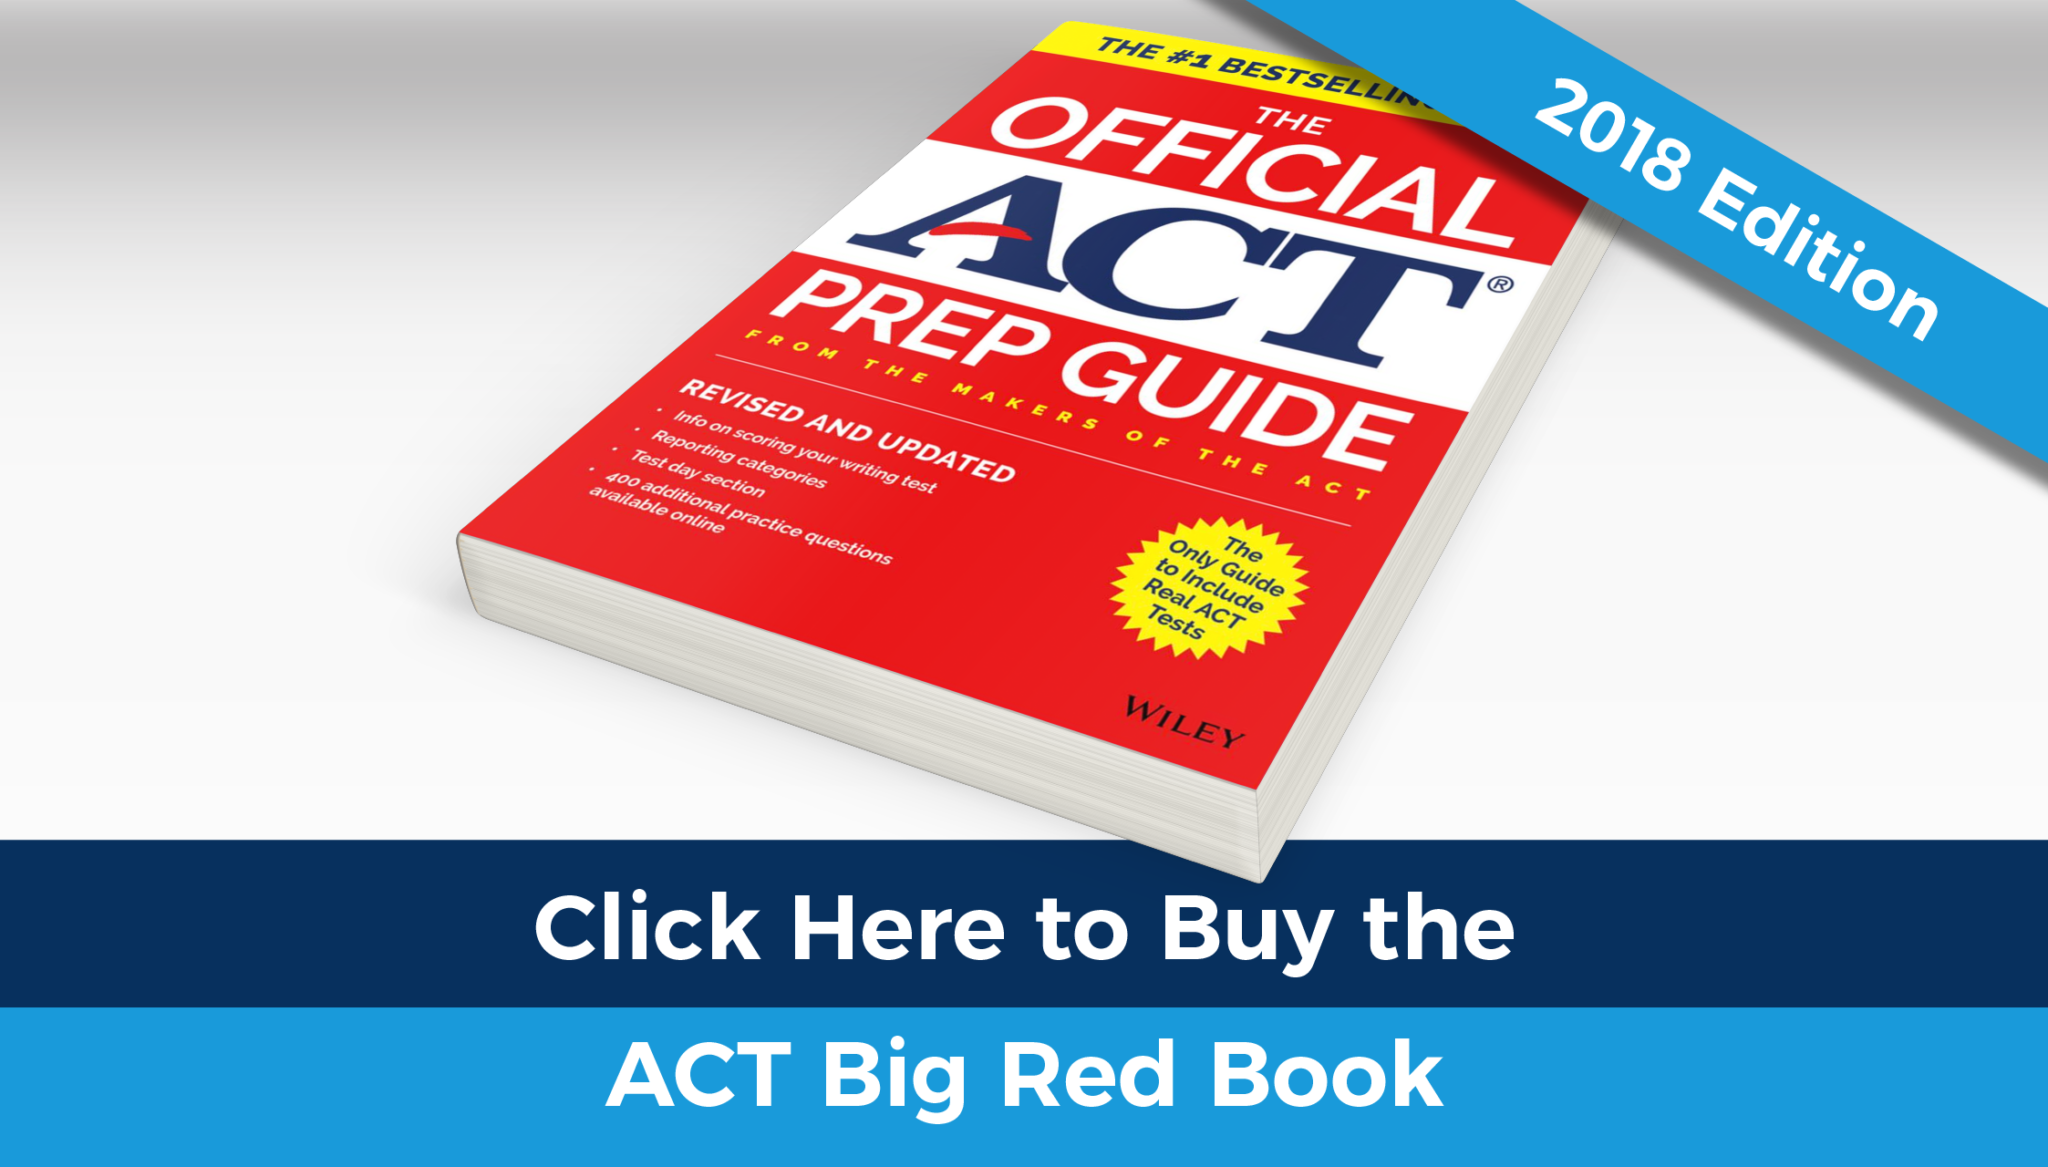 2018 ACT Big Red Book